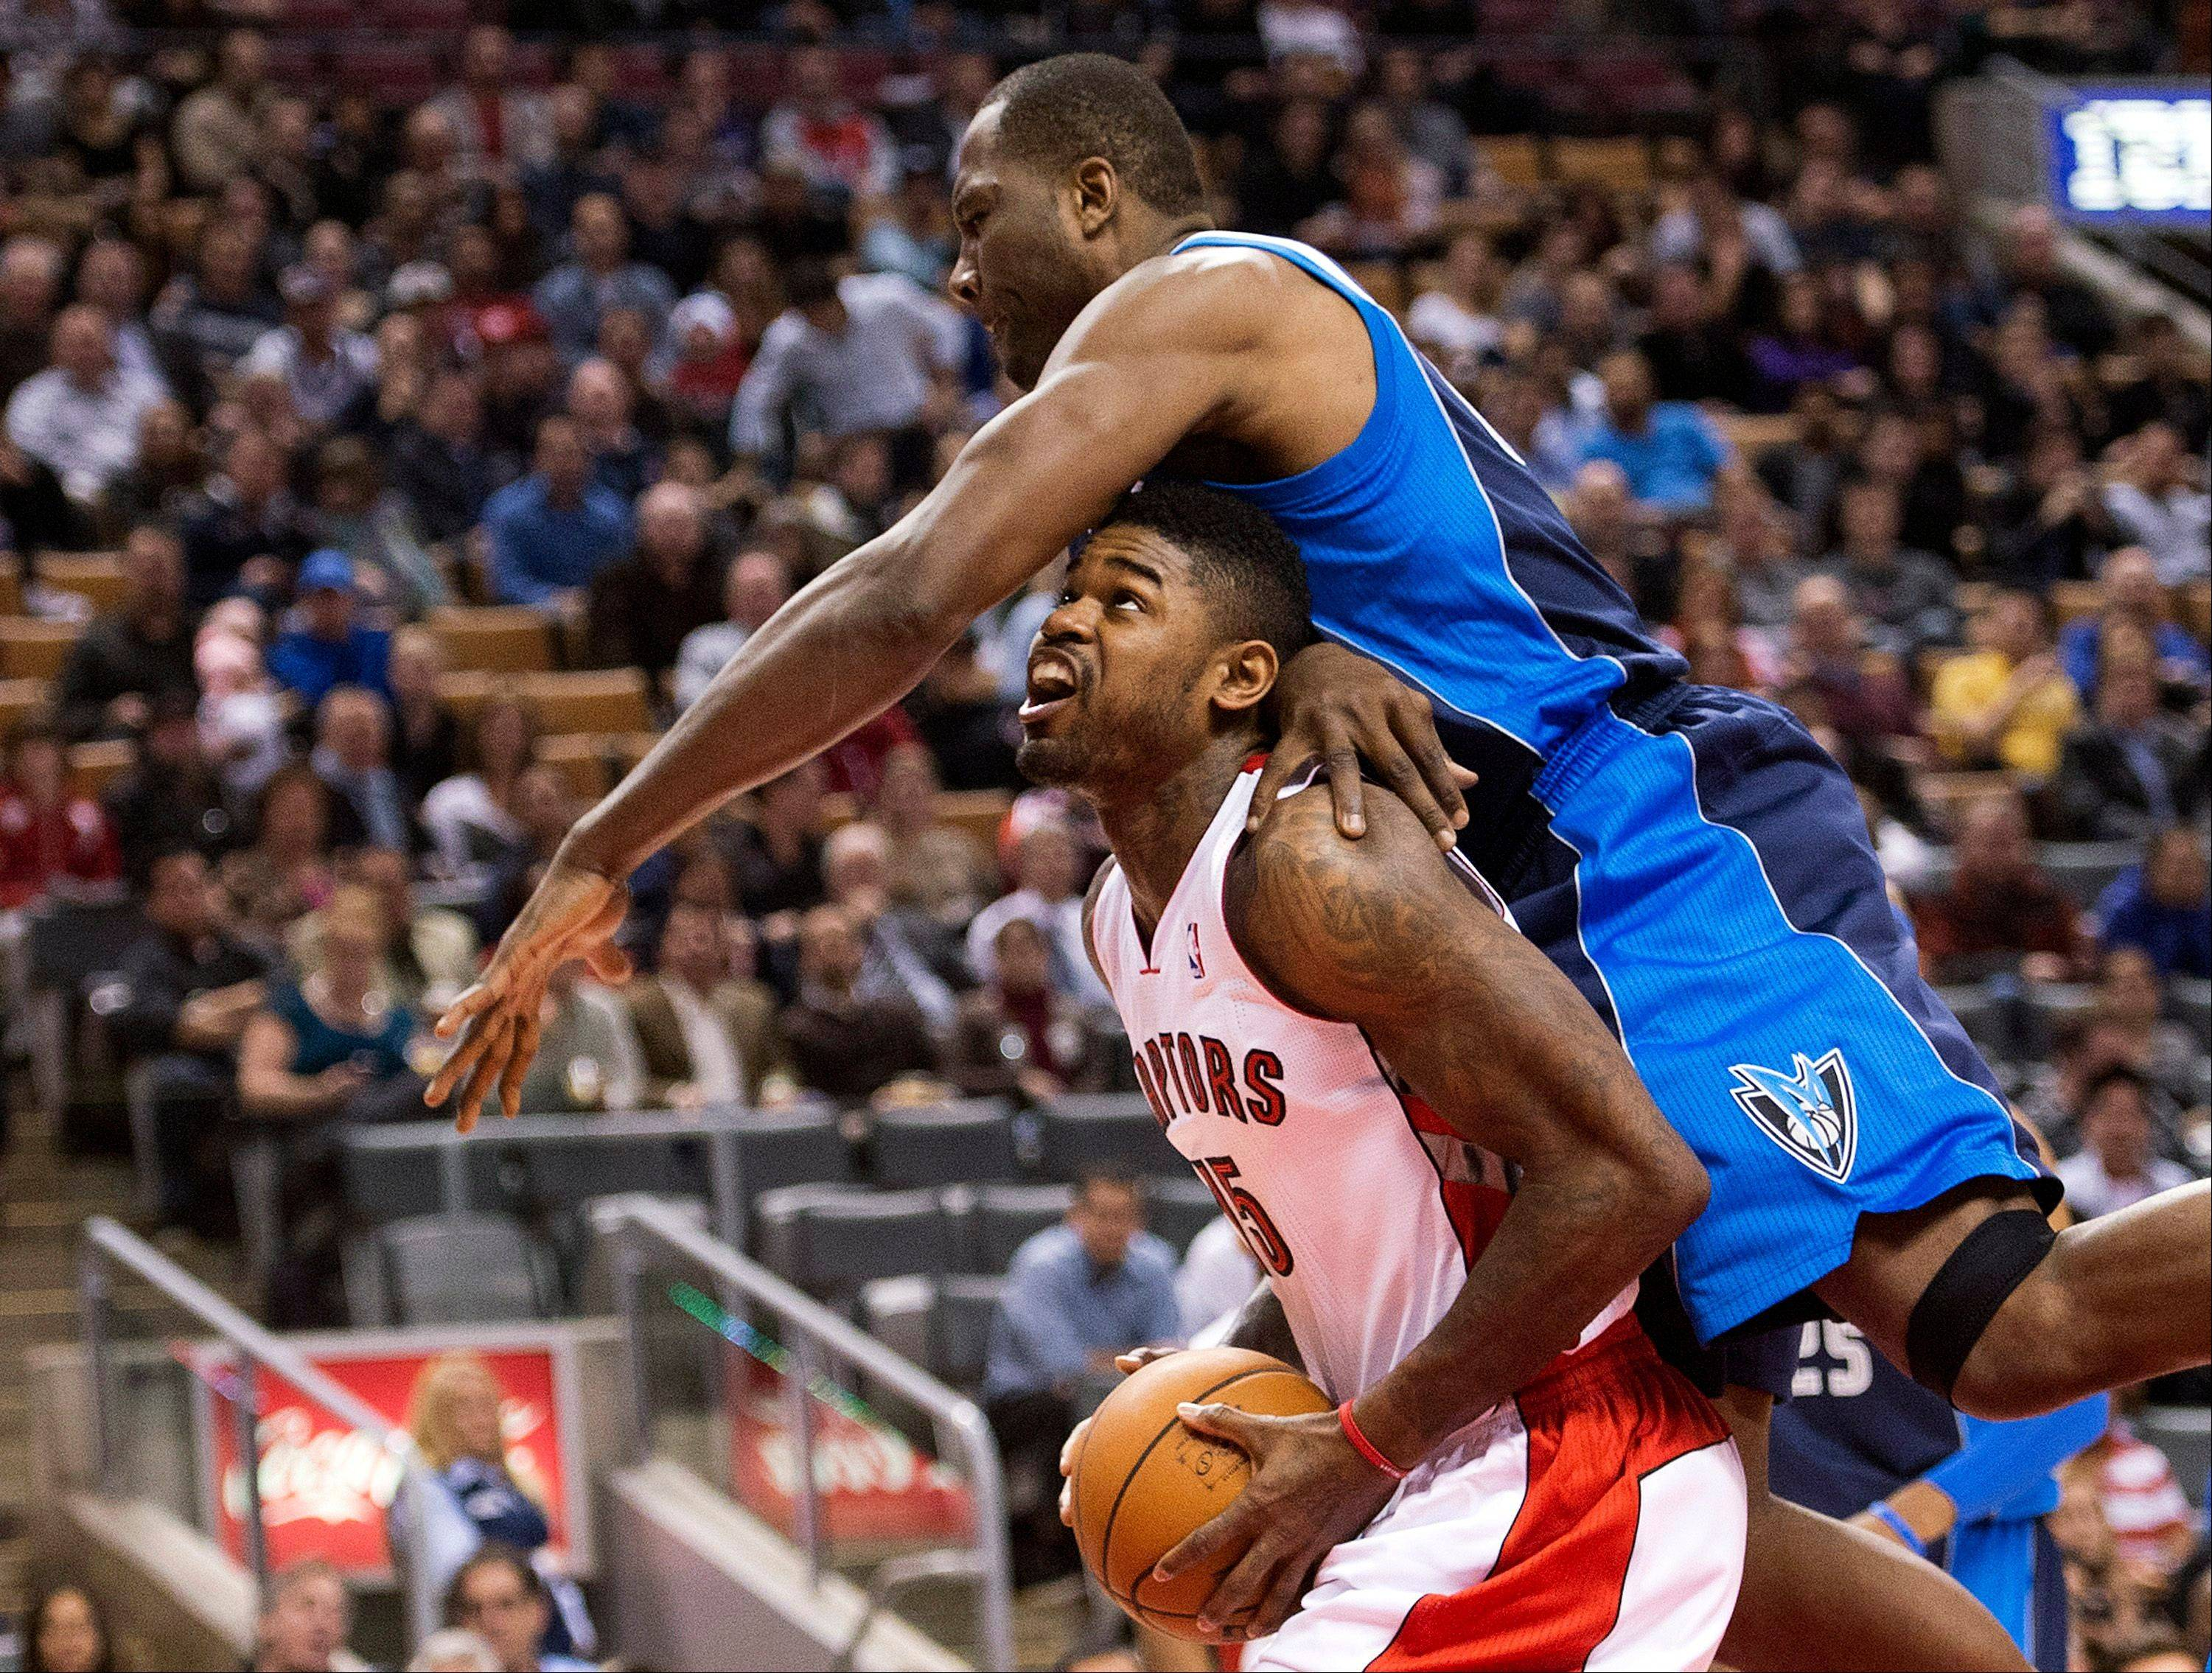 Toronto Raptors forward Amir Johnson, bottom, tries to drive to the net past Dallas Mavericks forward Elton Brand, top, Friday during first half in Toronto.